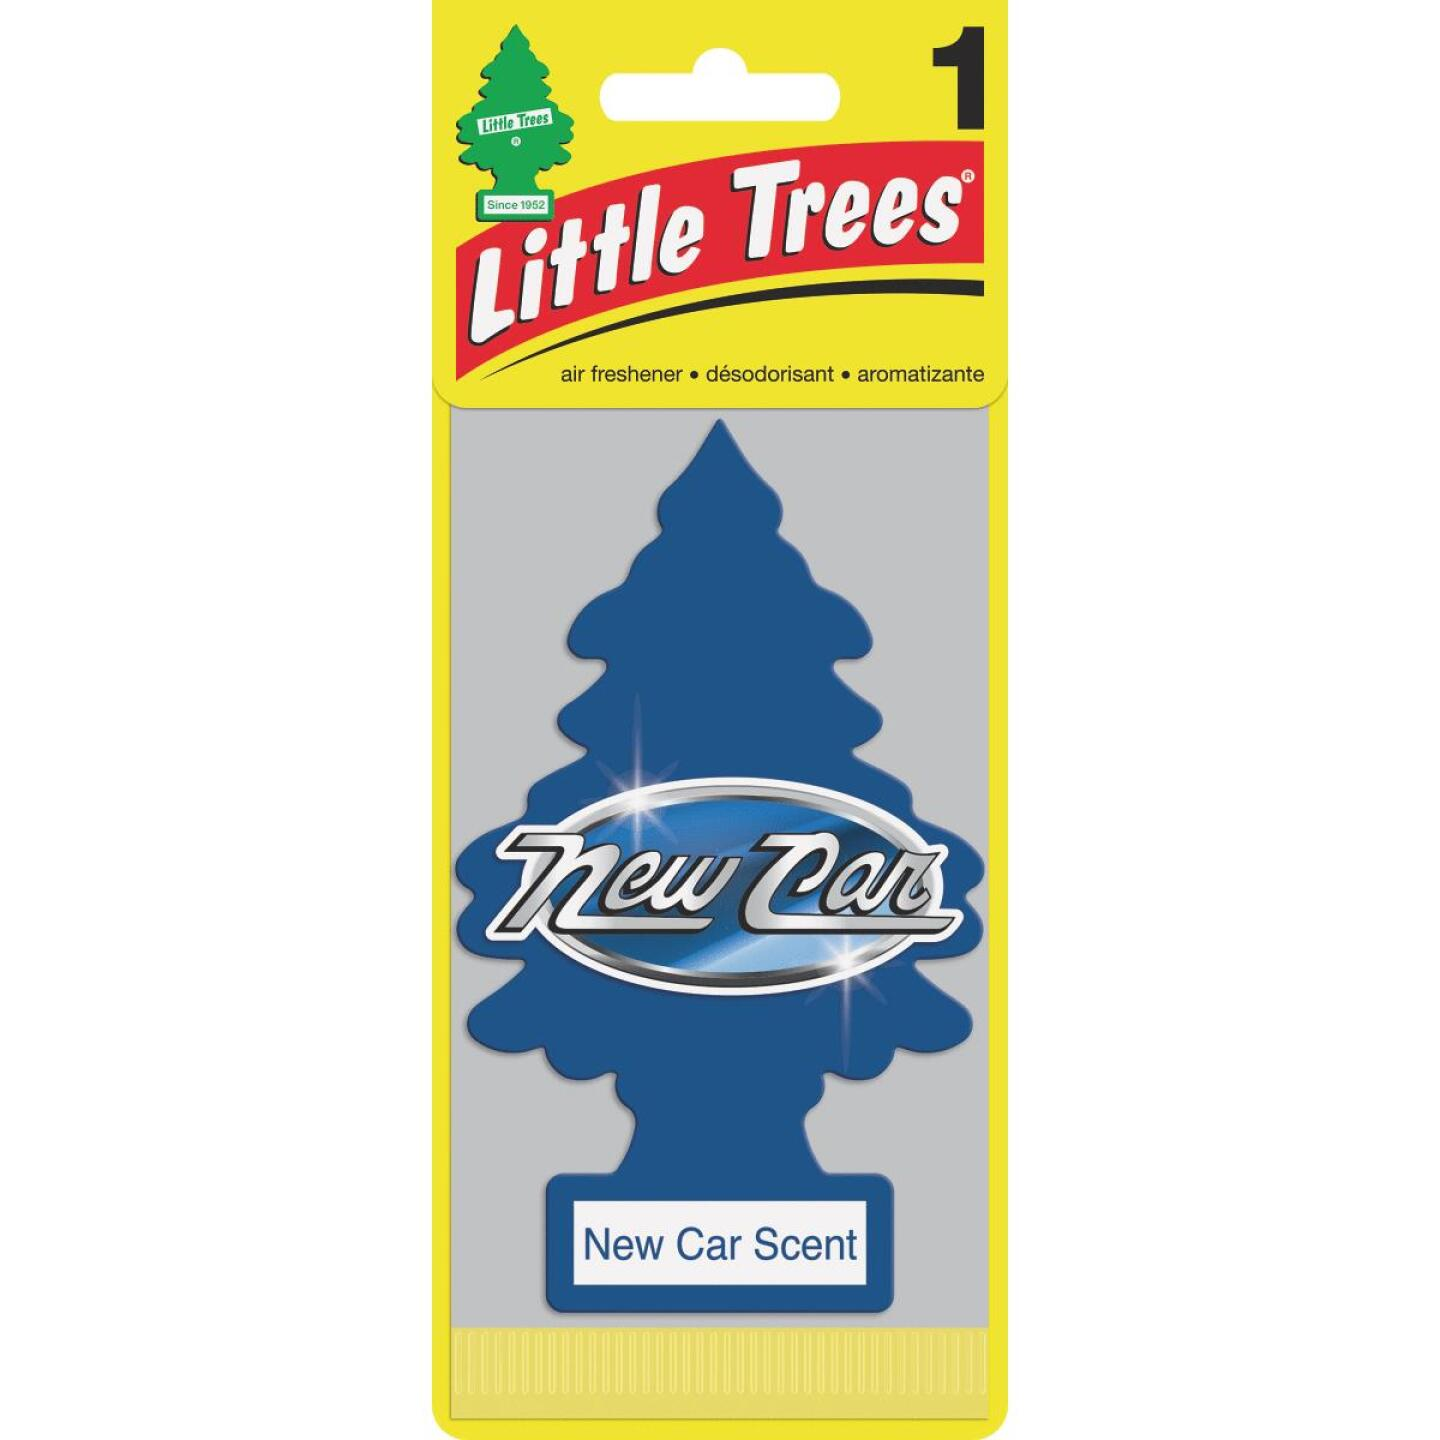 Little Trees Car Air Freshener, New Car Scent Image 1